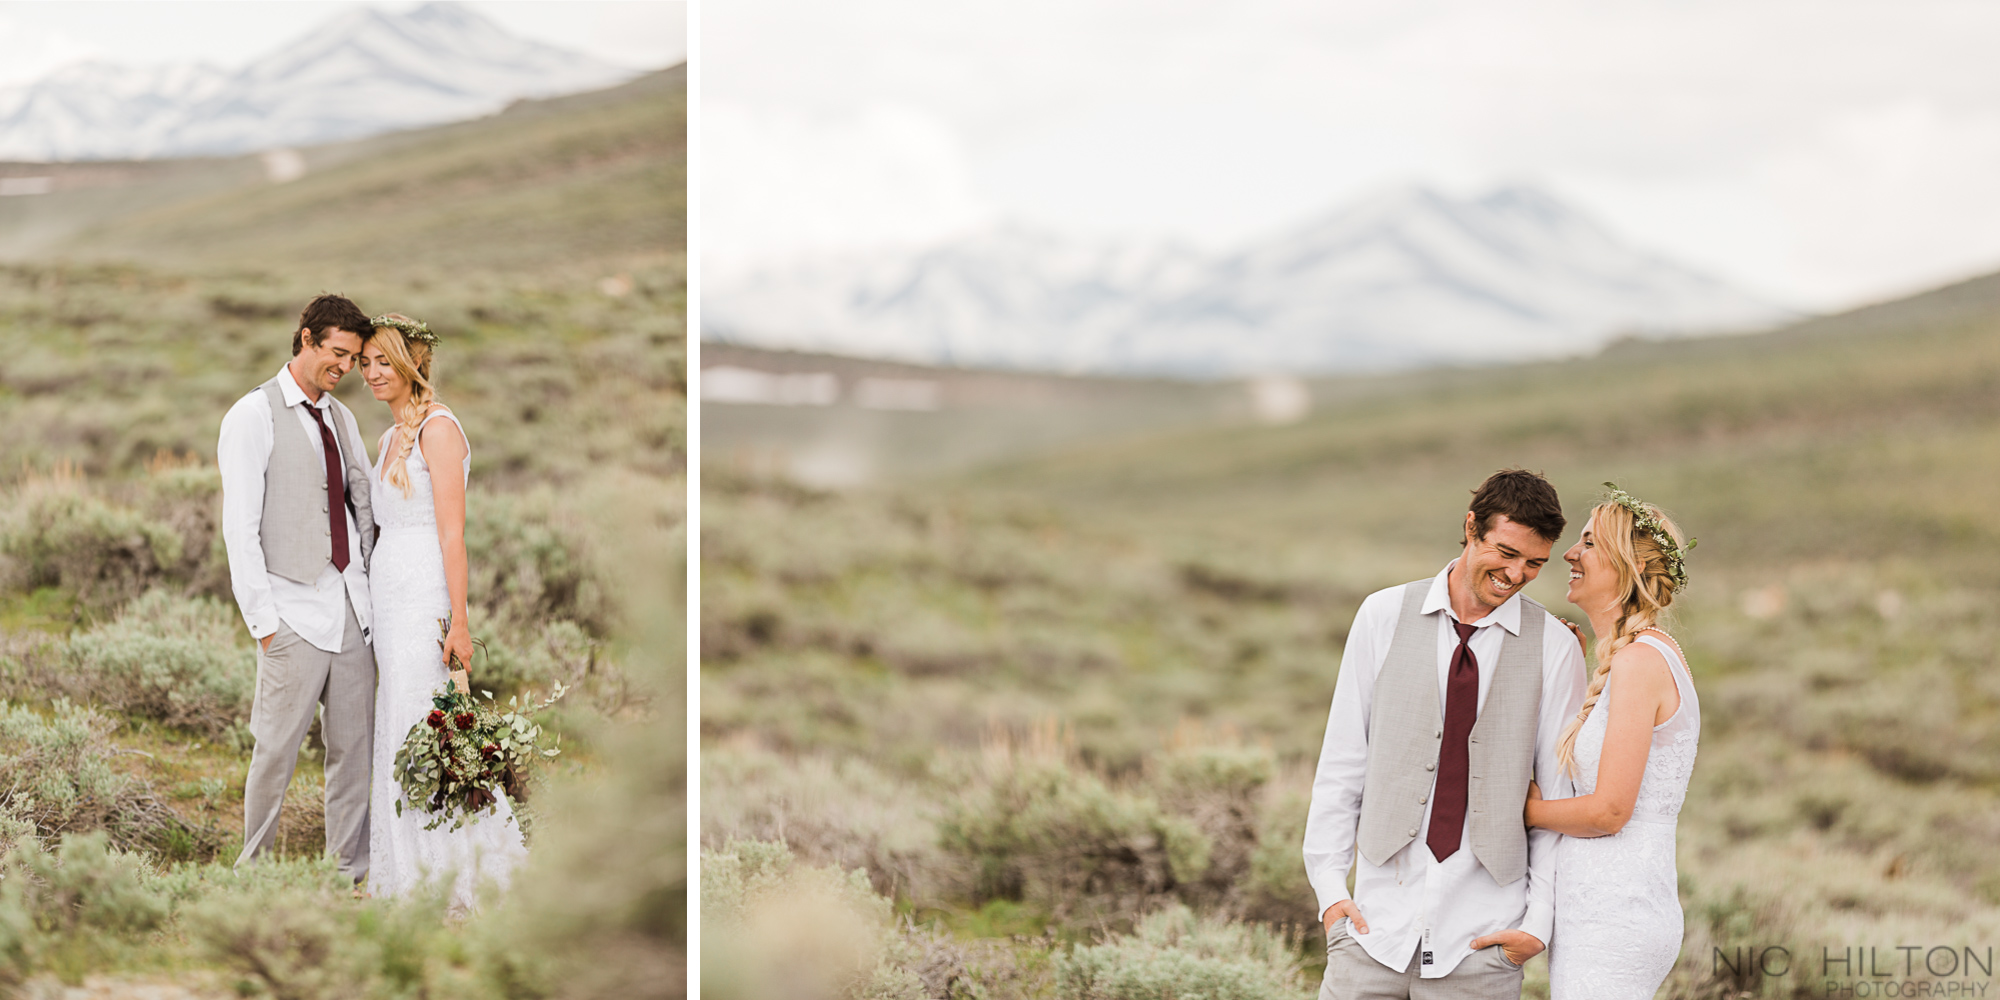 Bodie-Ghost-Town-Bride-and-Groom.jpg